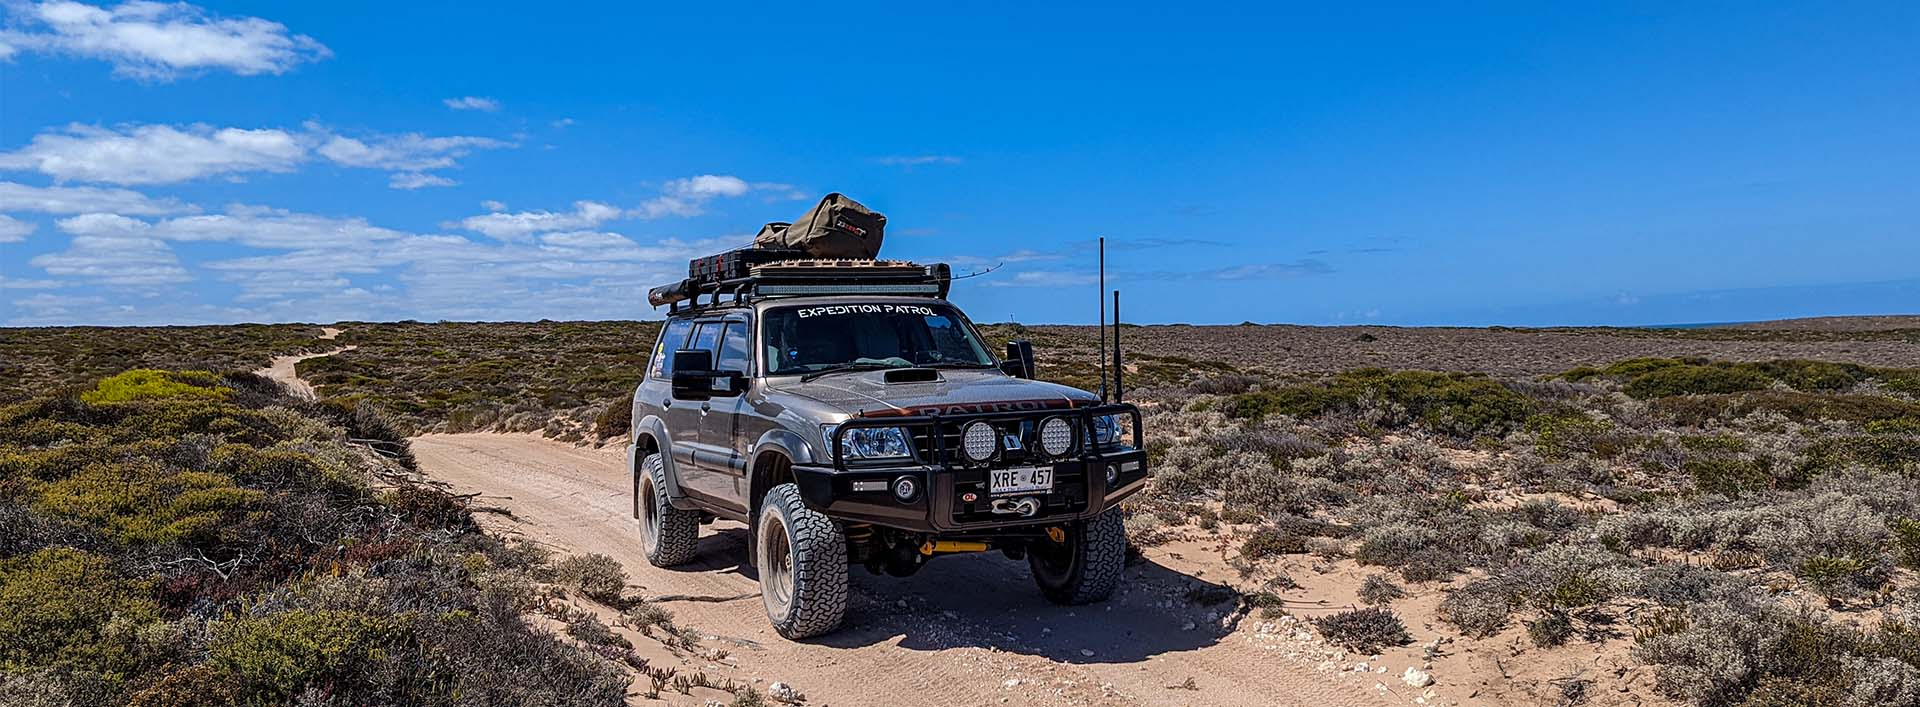 TM2 Towing Mirrors